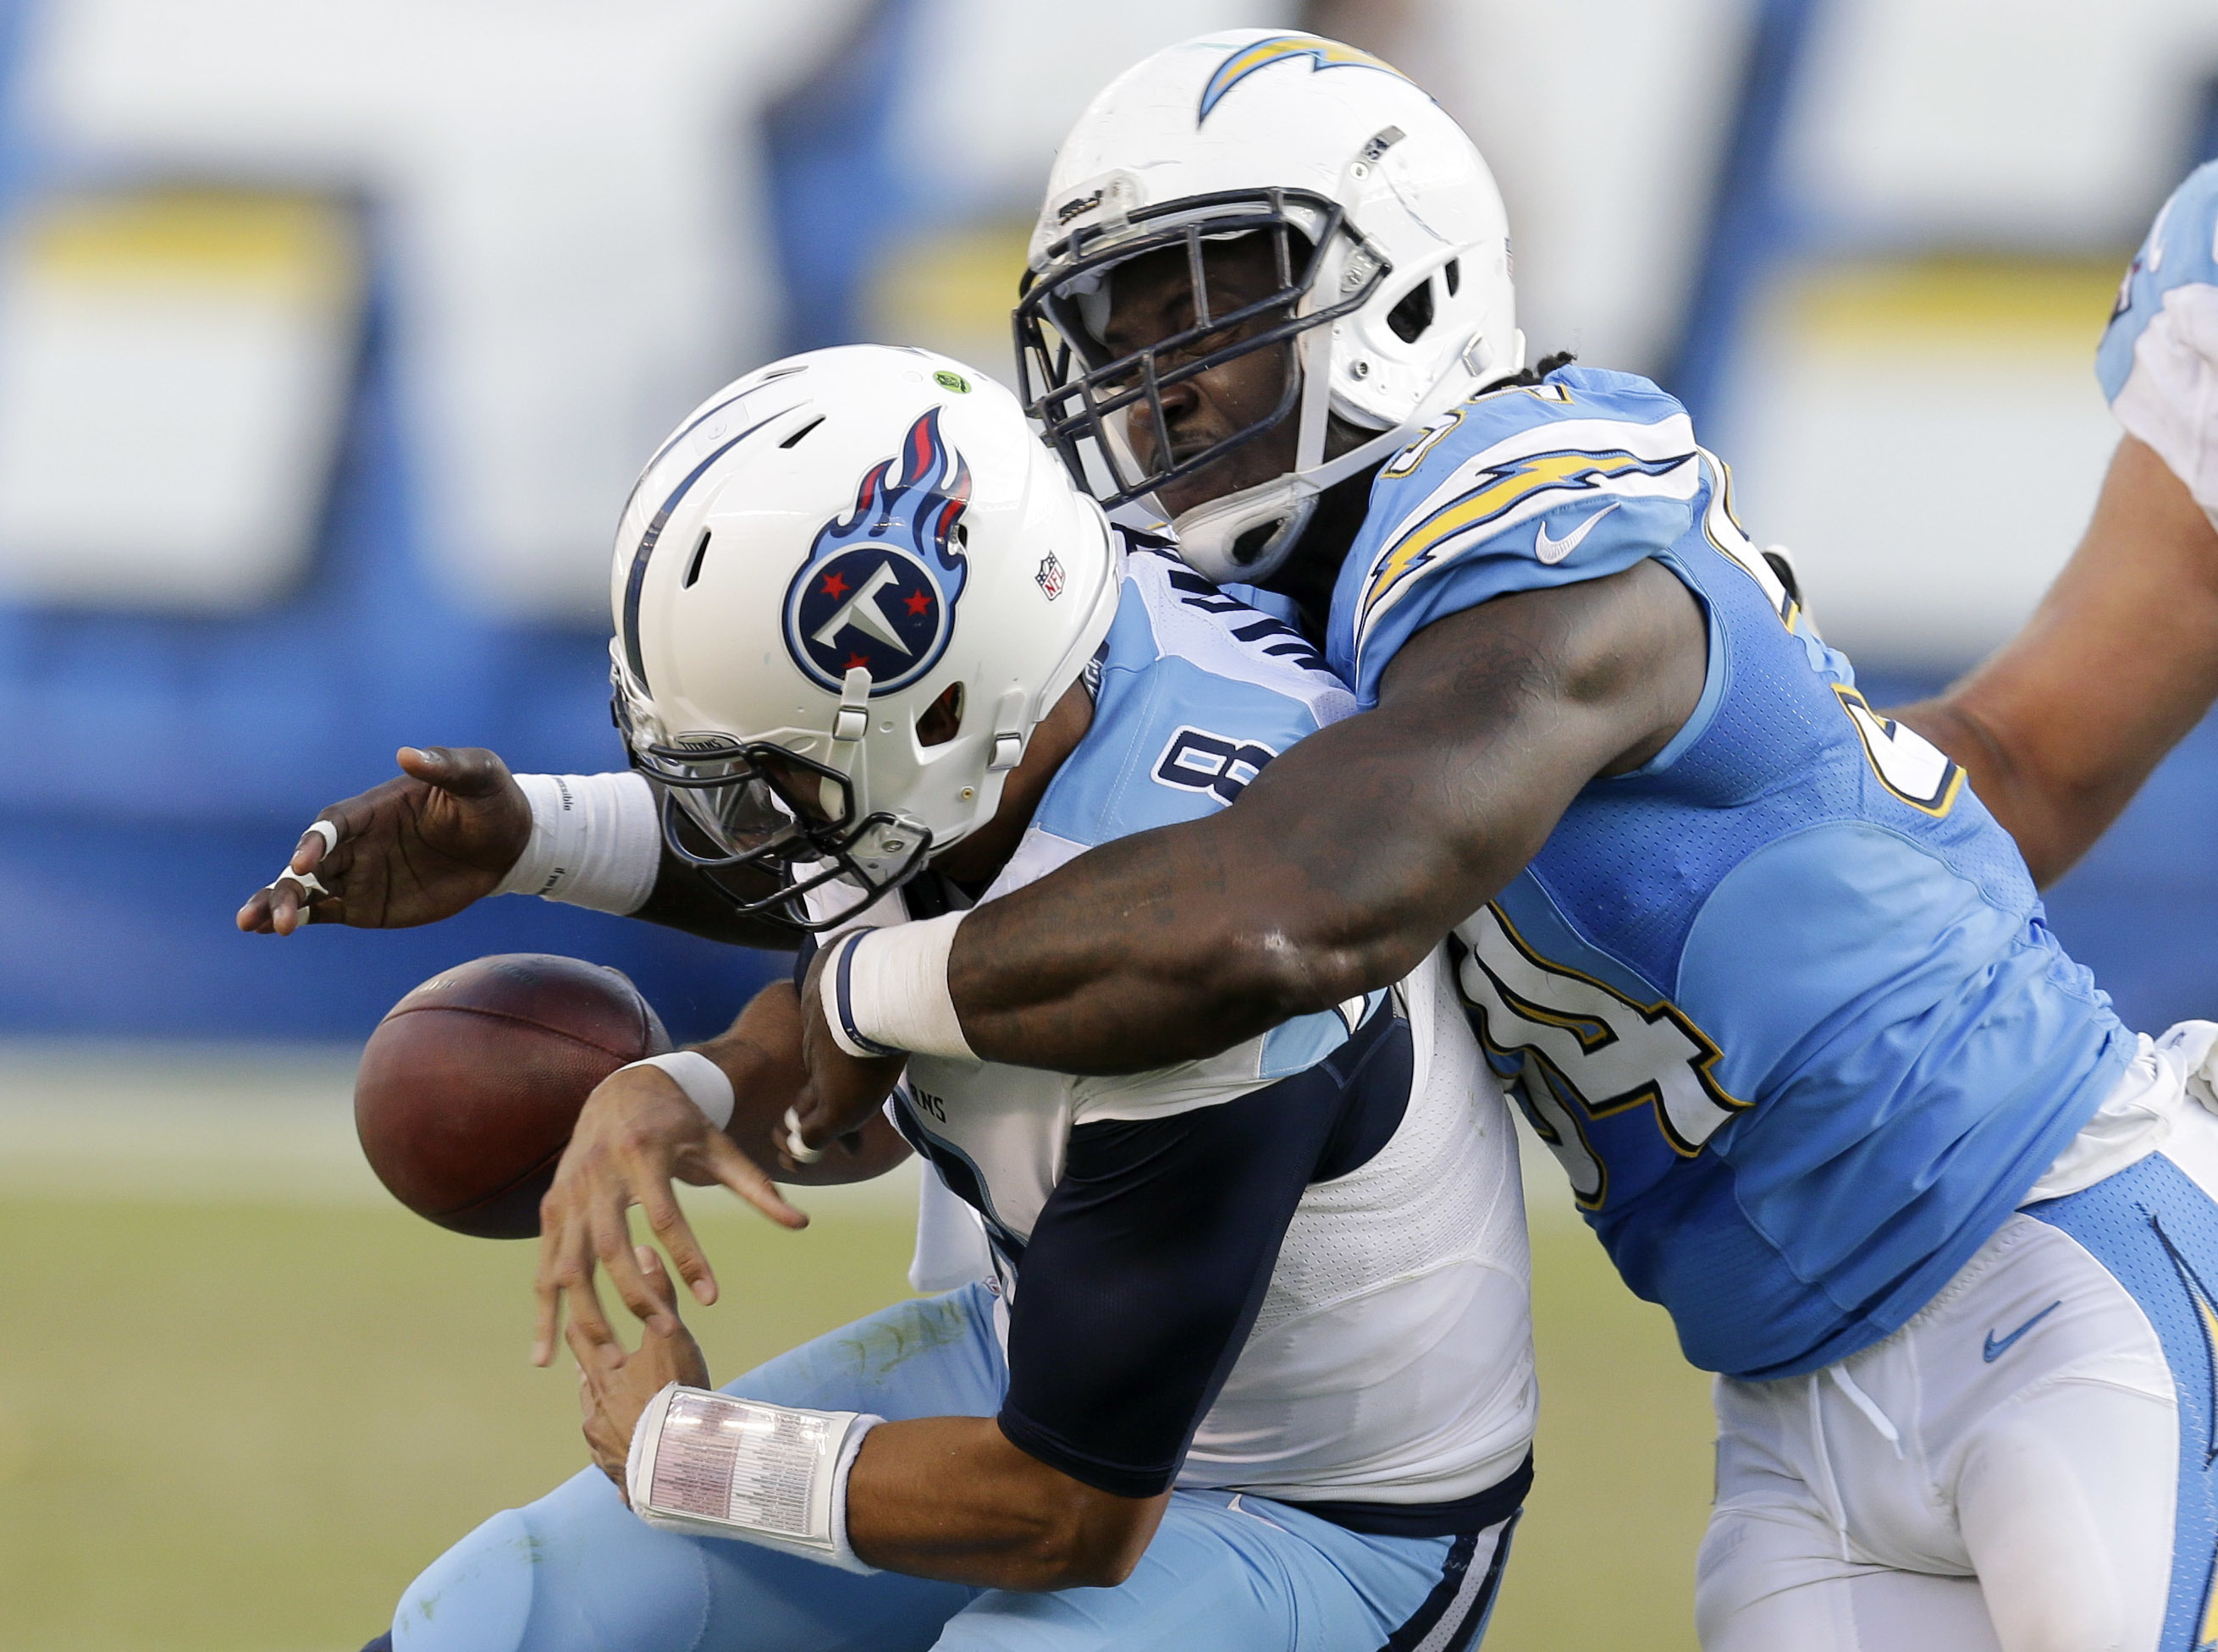 FILe - In this Nov. 6, 2016, file photo, Tennessee Titans quarterback Marcus Mariota, left, fumbles the ball as he is brought down by San Diego Chargers outside linebacker Melvin Ingram during the second half of an NFL football game, in San Diego. The Cha